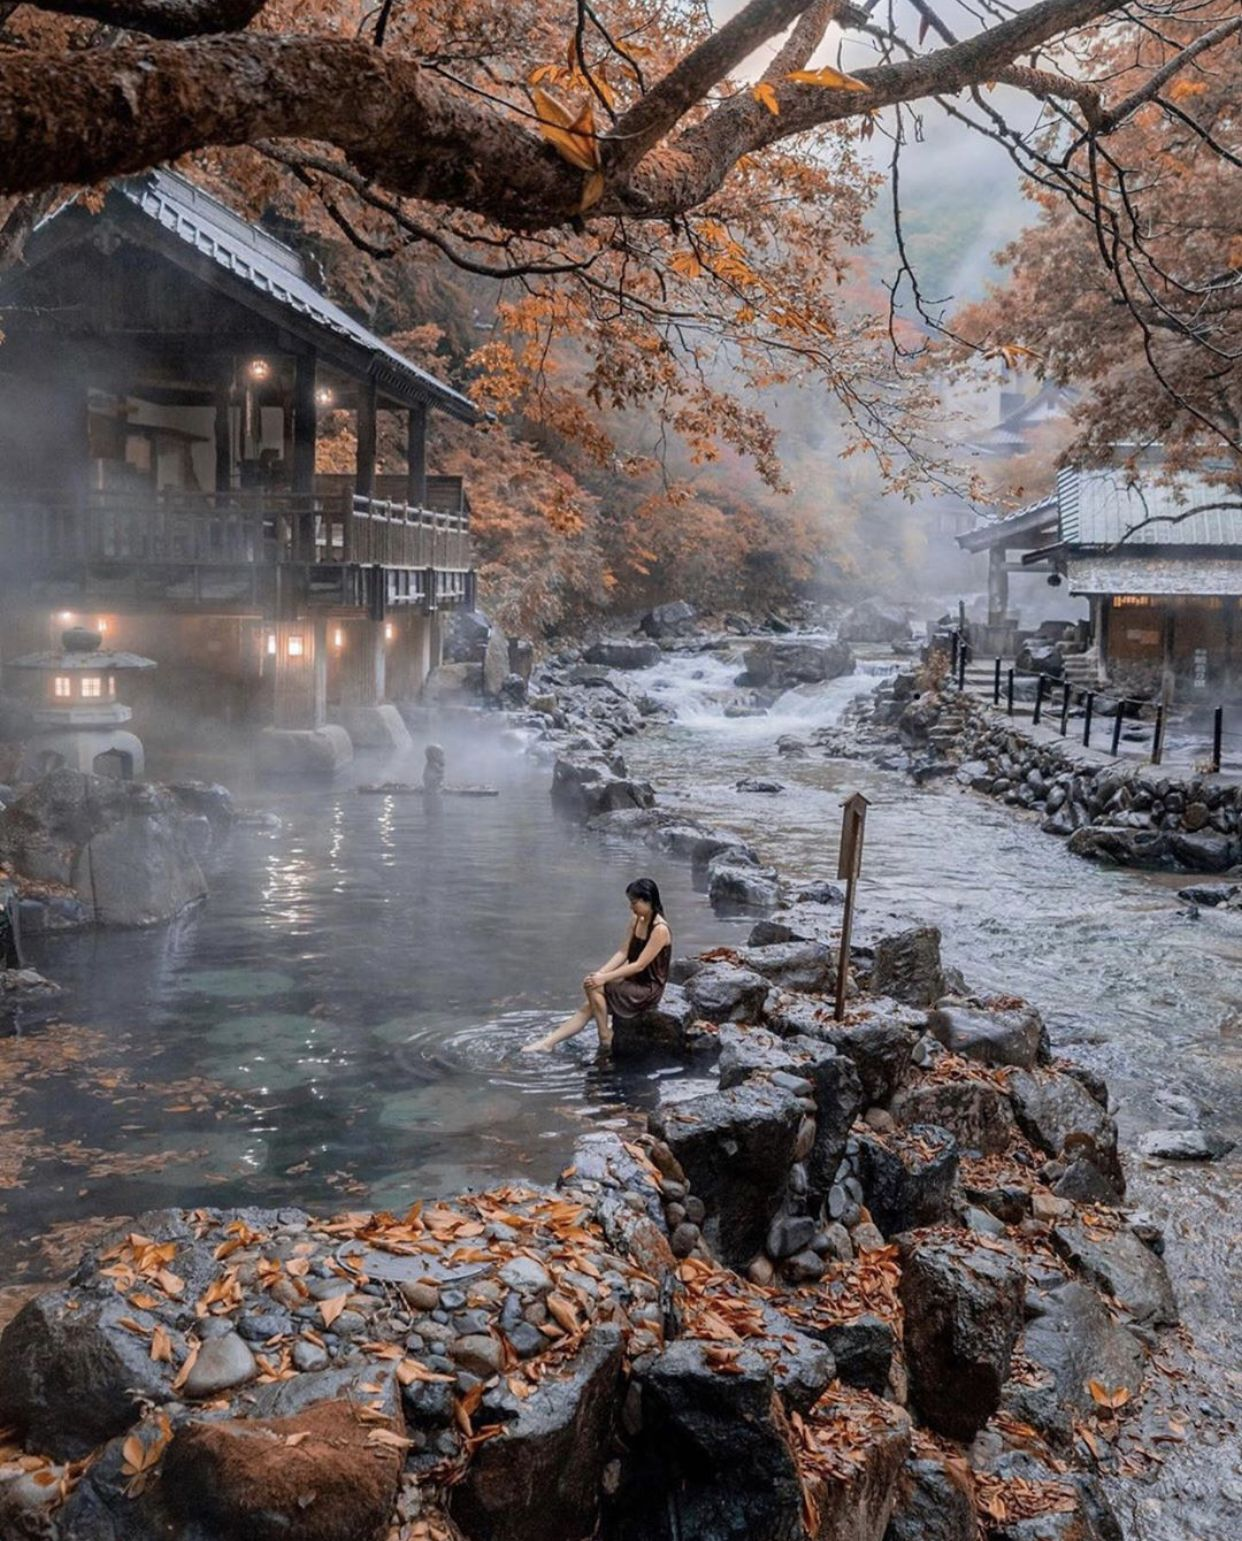 , Discover Takaragawa Onsen Osenkaku – One of the most beautiful Hot Spring place in Japan!, My Travels Blog 2020, My Travels Blog 2020